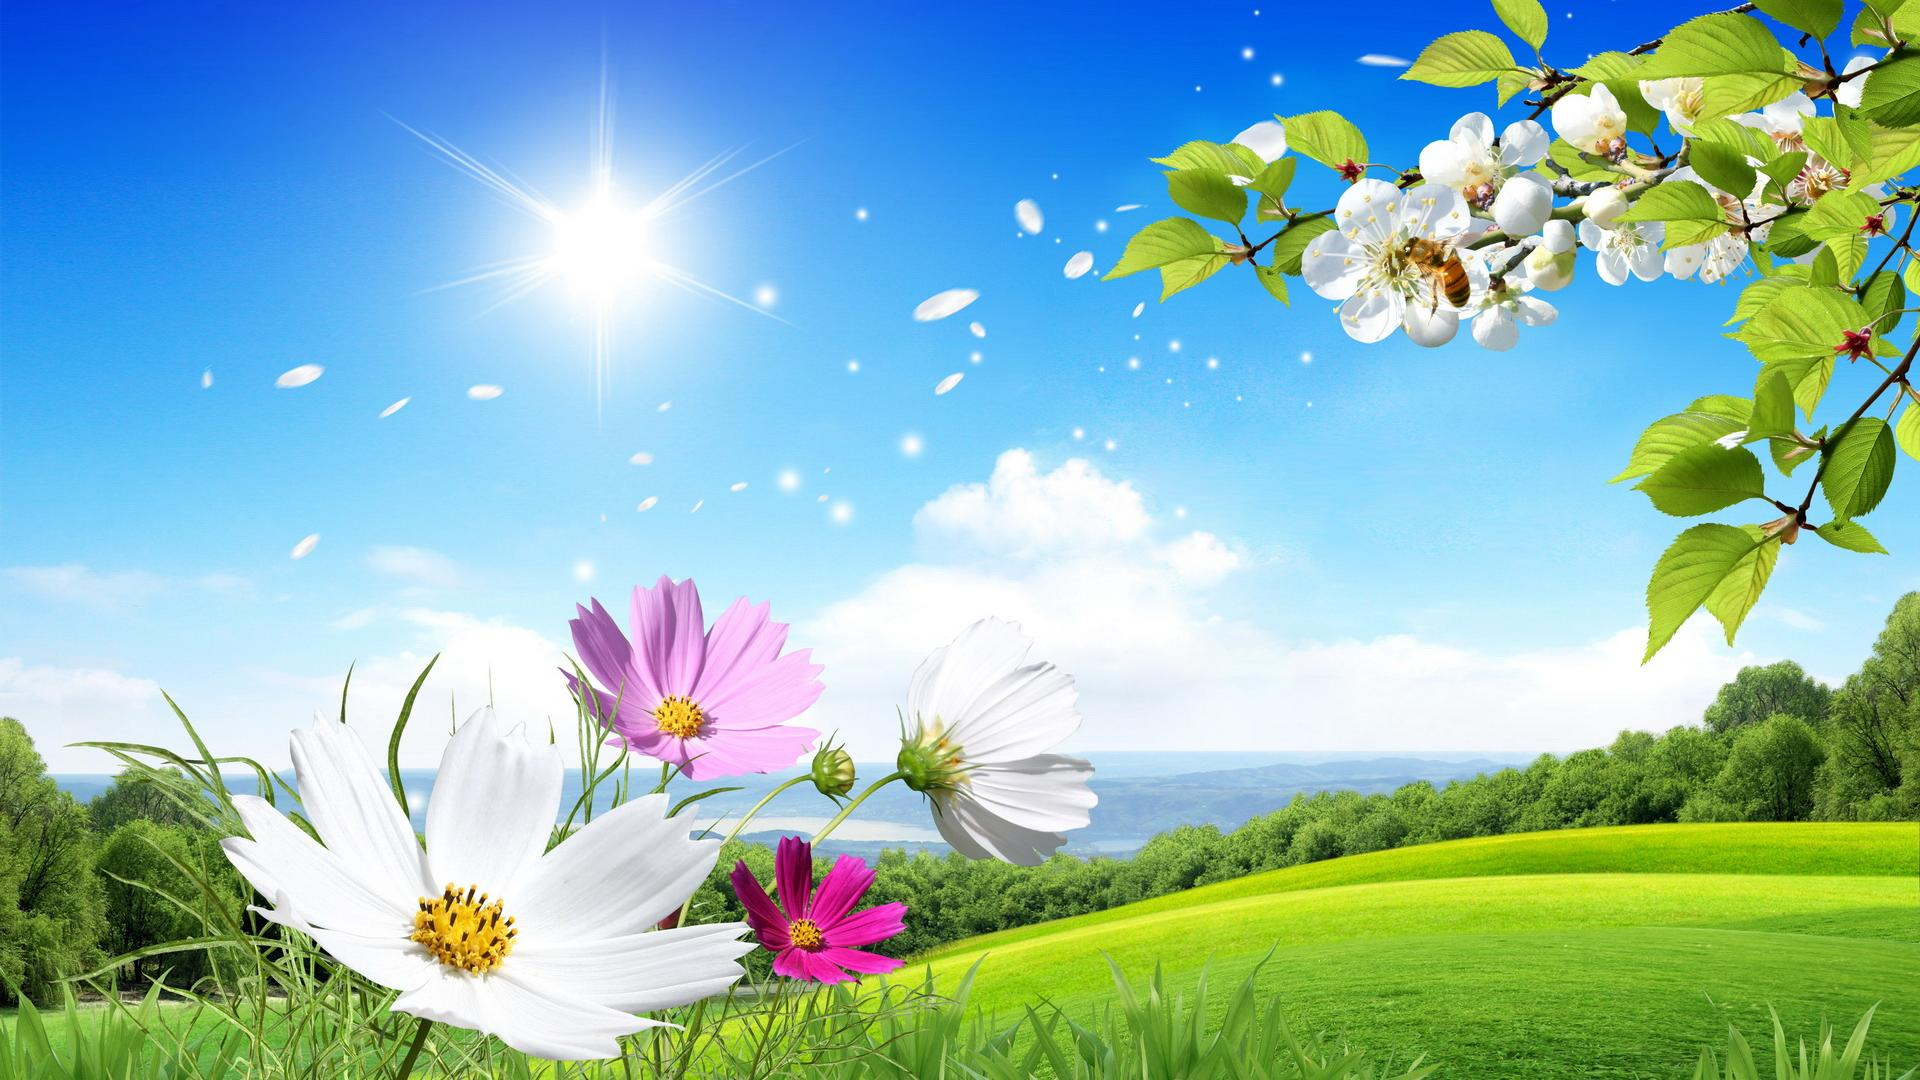 Background Flowers Desktop Wallpaper | PixelsTalk Net